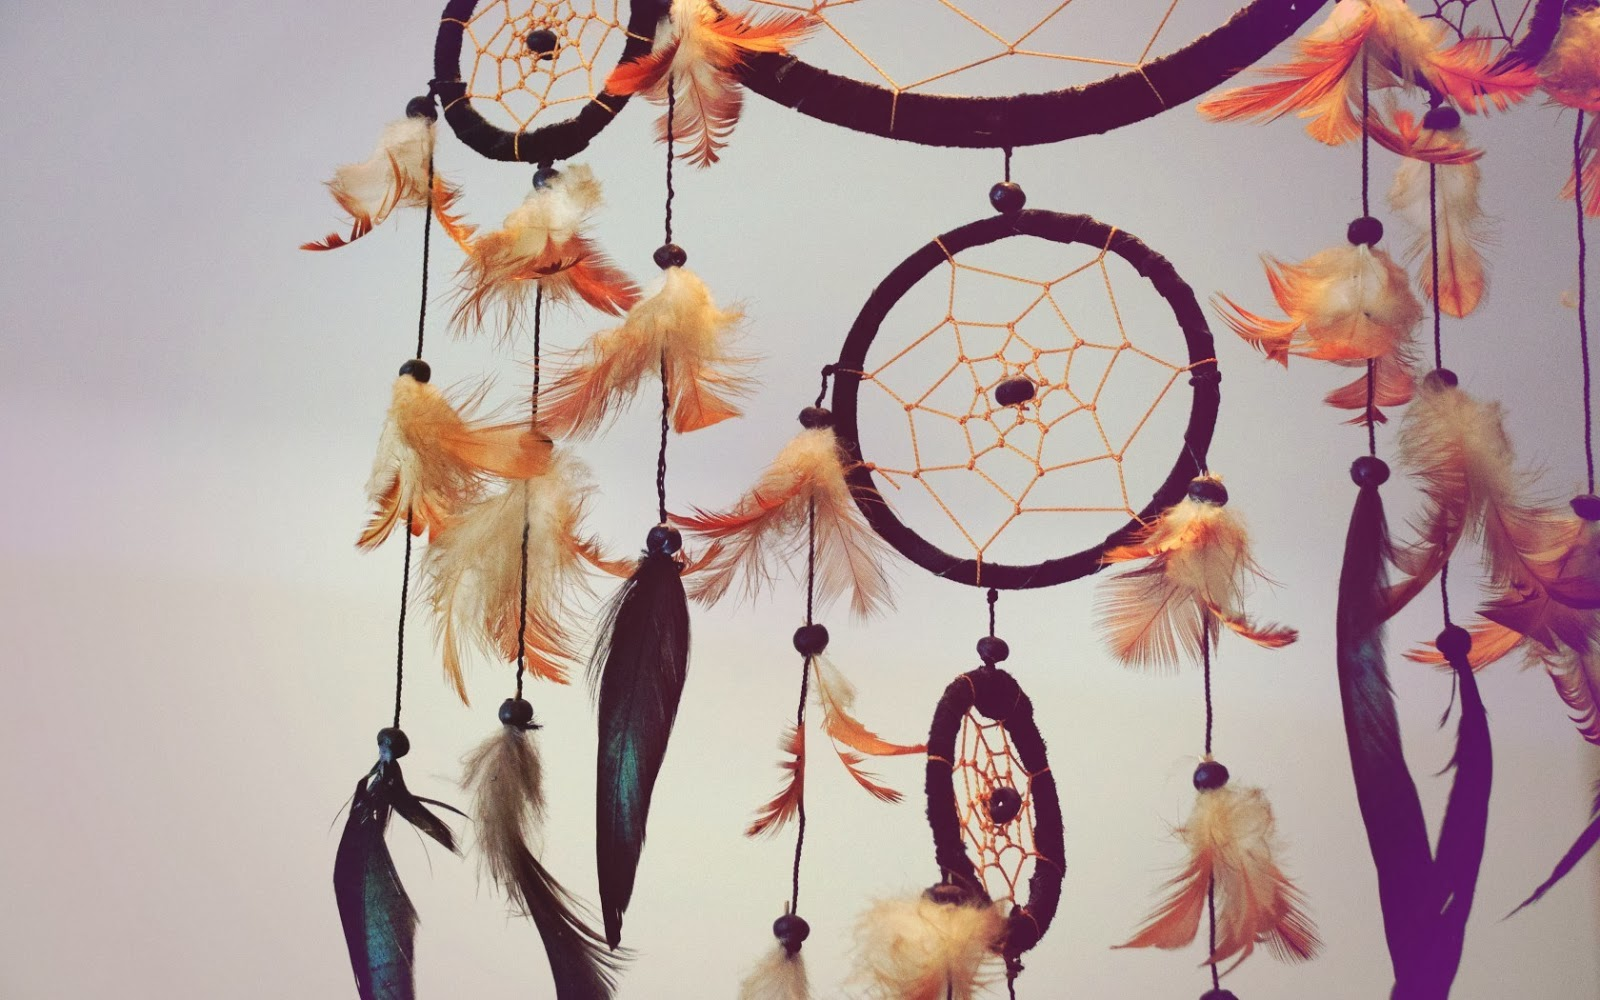 Dreamcatcher wallpapers hd beautiful wallpapers collection 2014 beautiful dreamcatcher hd 1 voltagebd Images